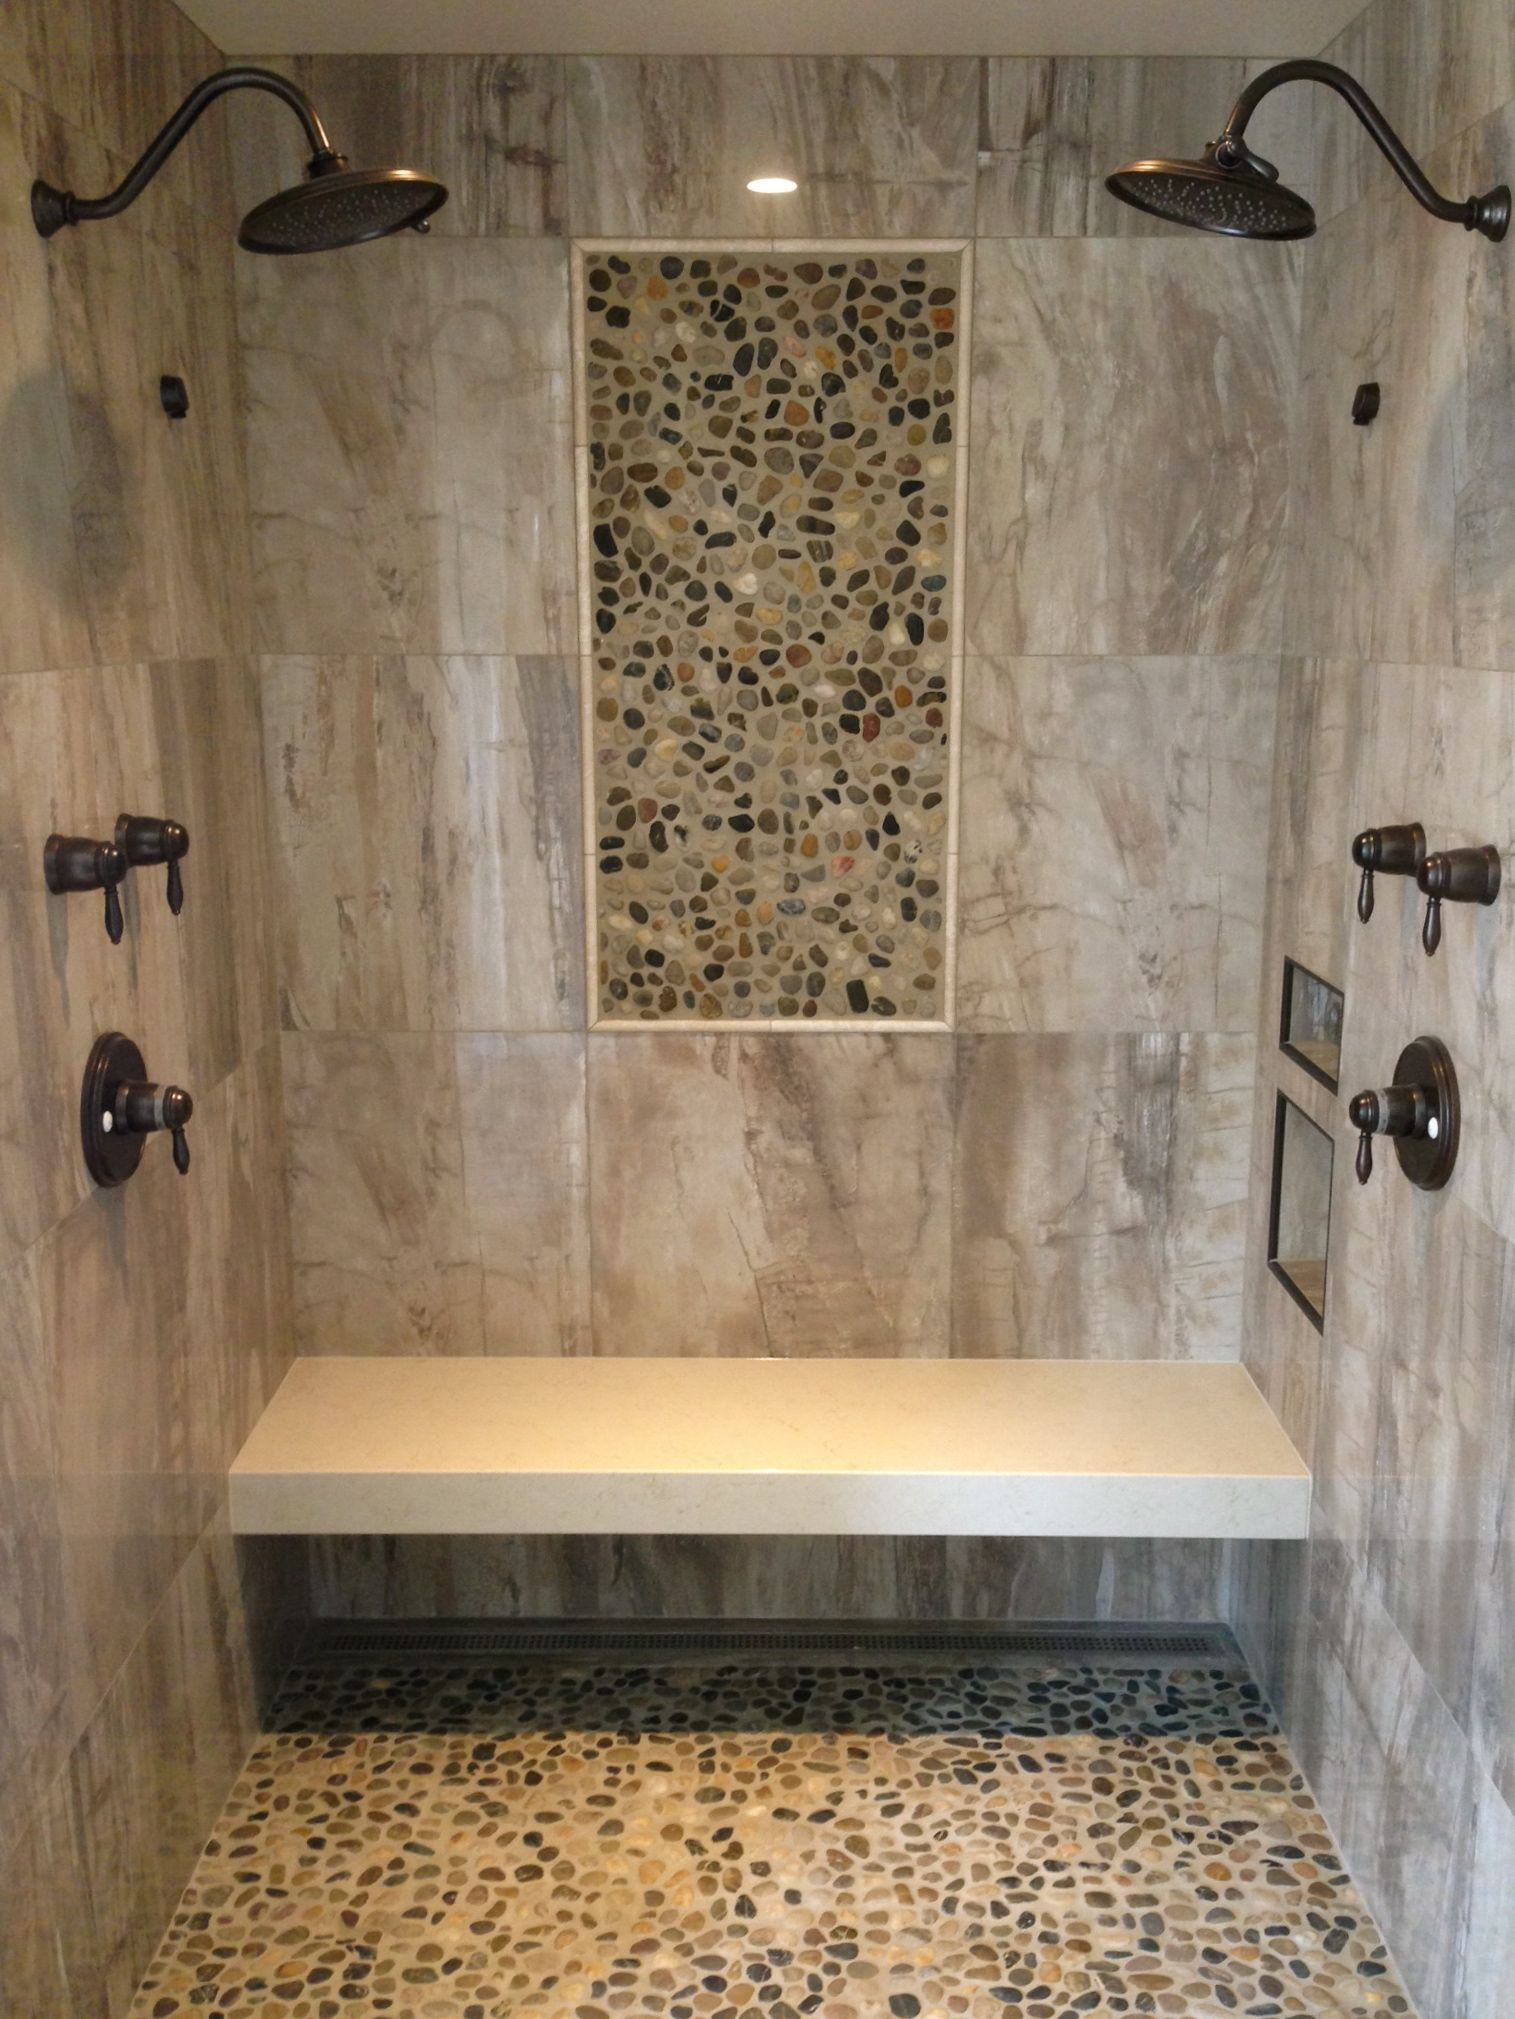 Barrier Free Shower Wall Tile 24 X 24 Porcelain Tile Pebble Mosaic